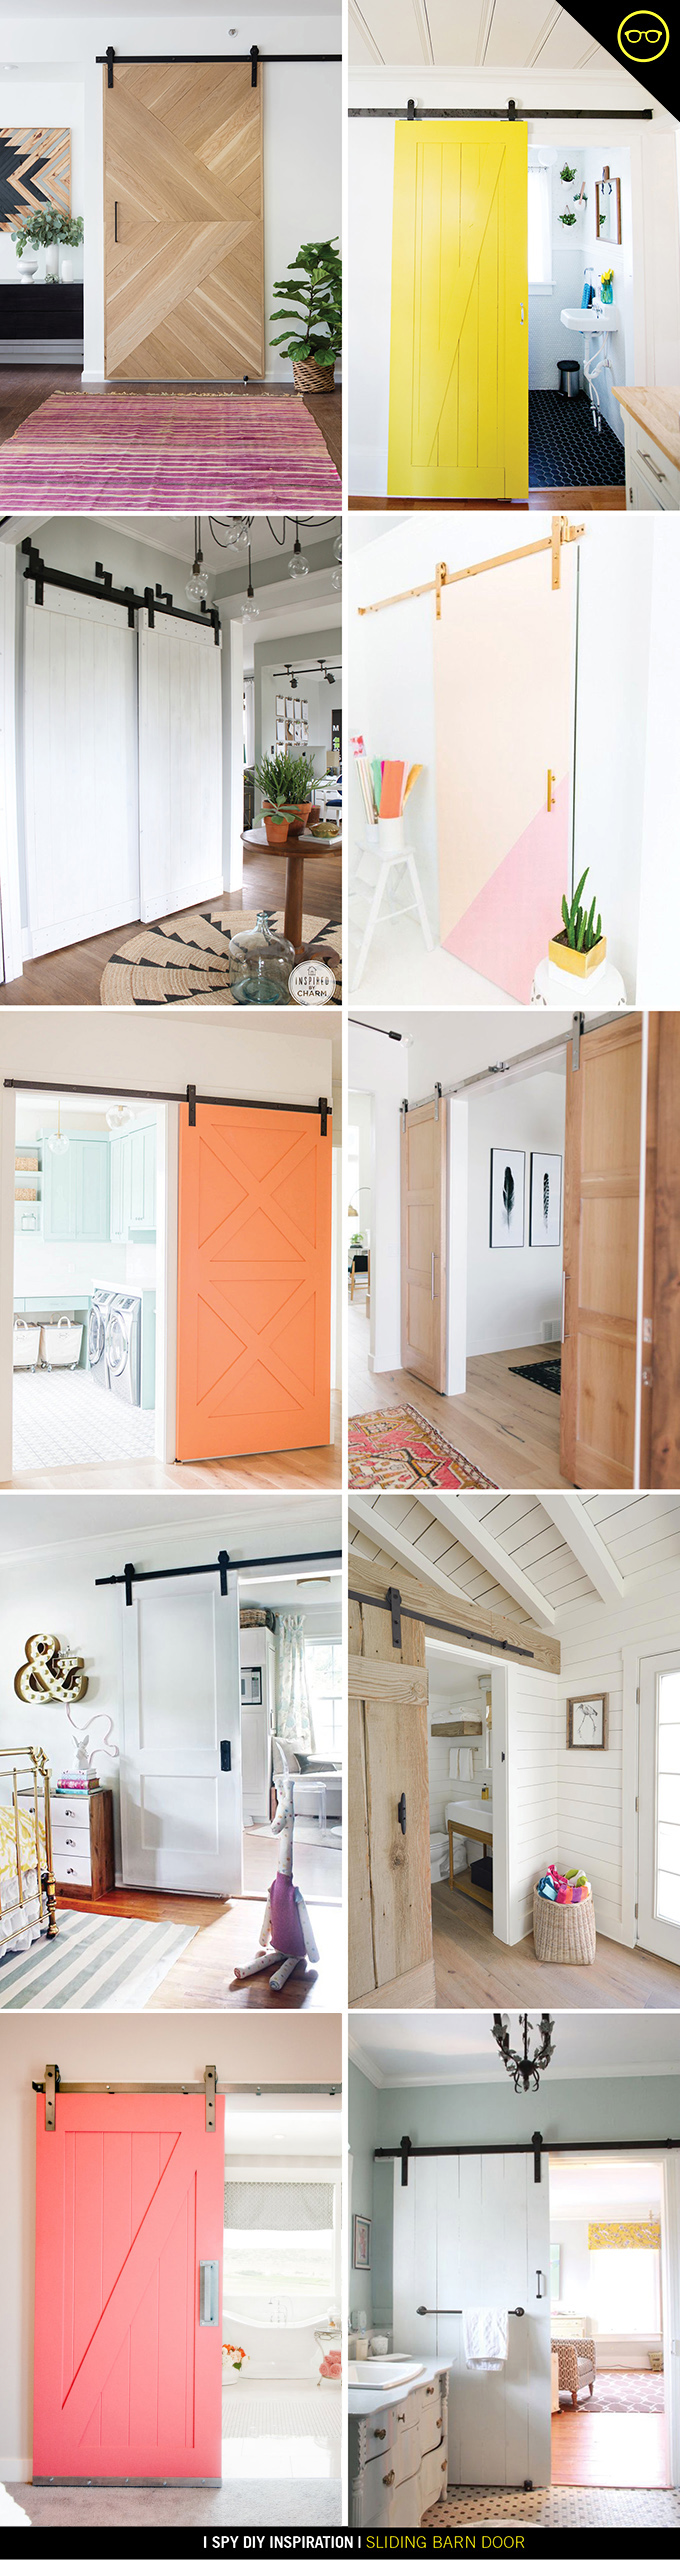 ispydiy_barndoor copy